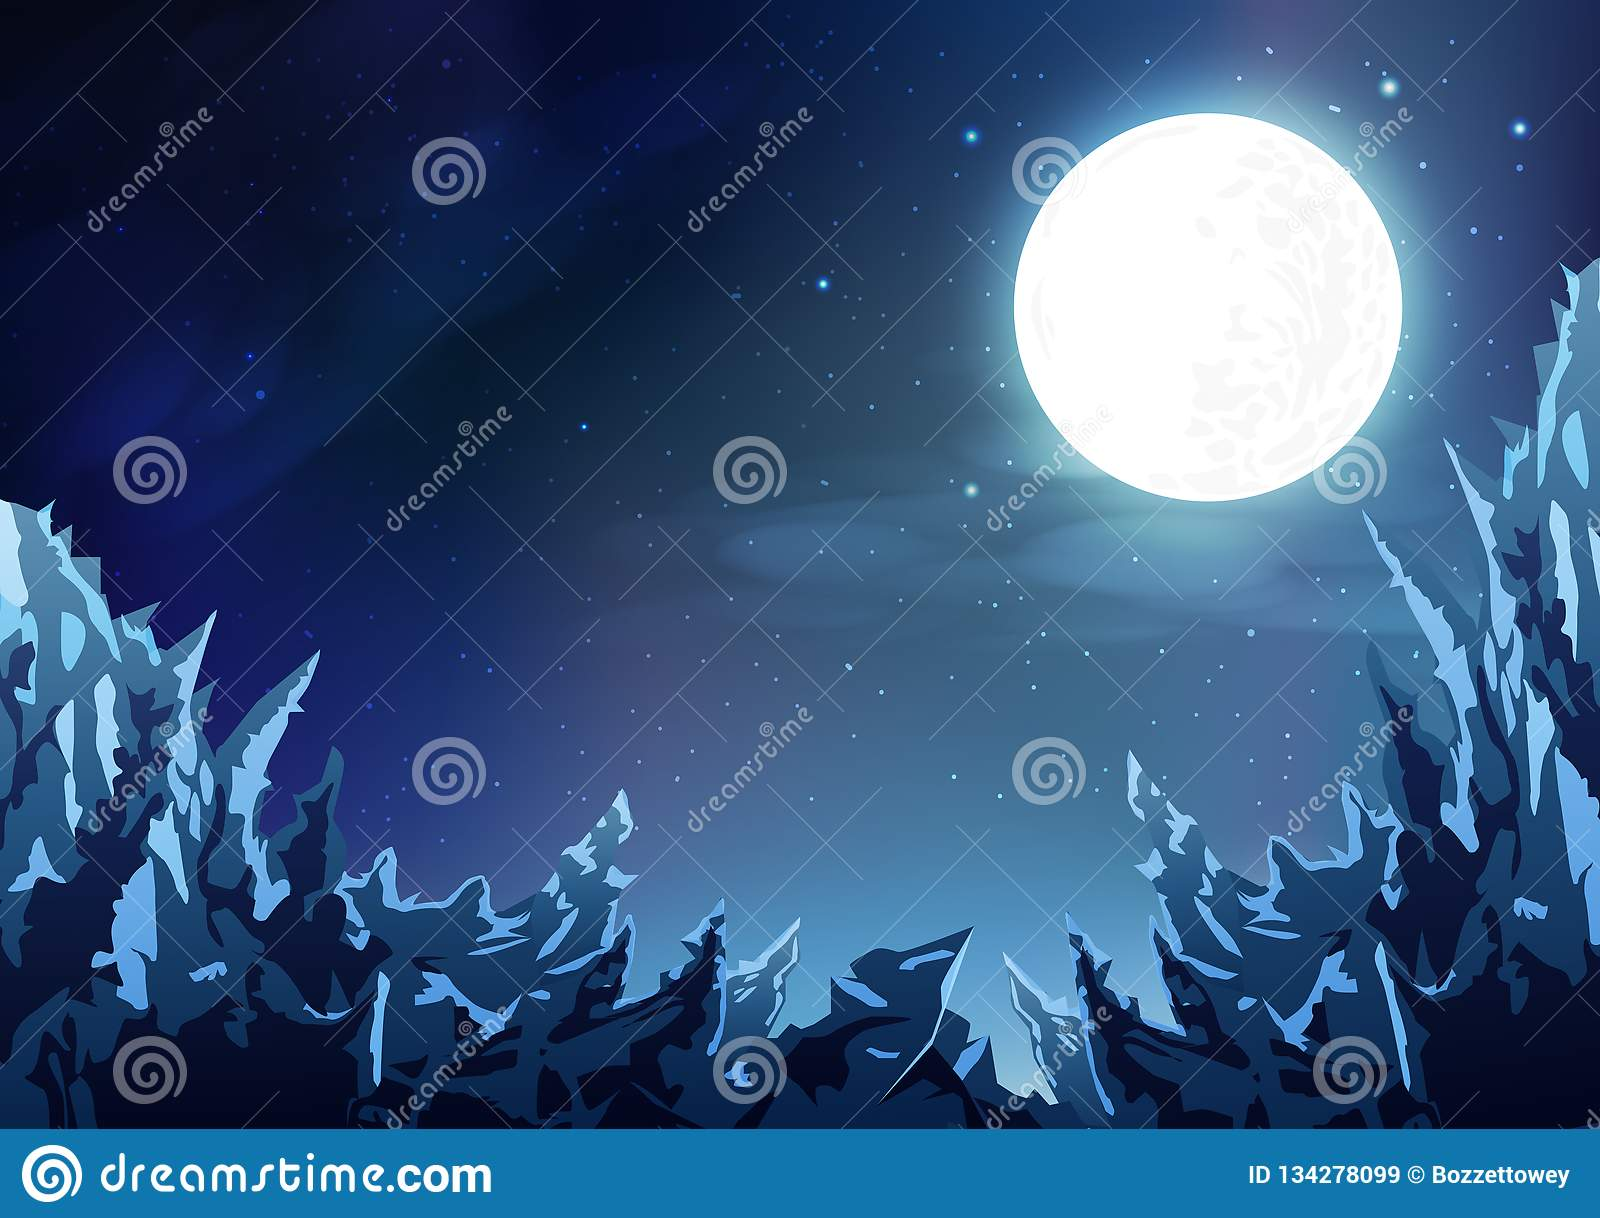 Mountains abstract background, ice panorama fantasy magic night cloudy sky scene with full moon, stars scatter on galaxy space